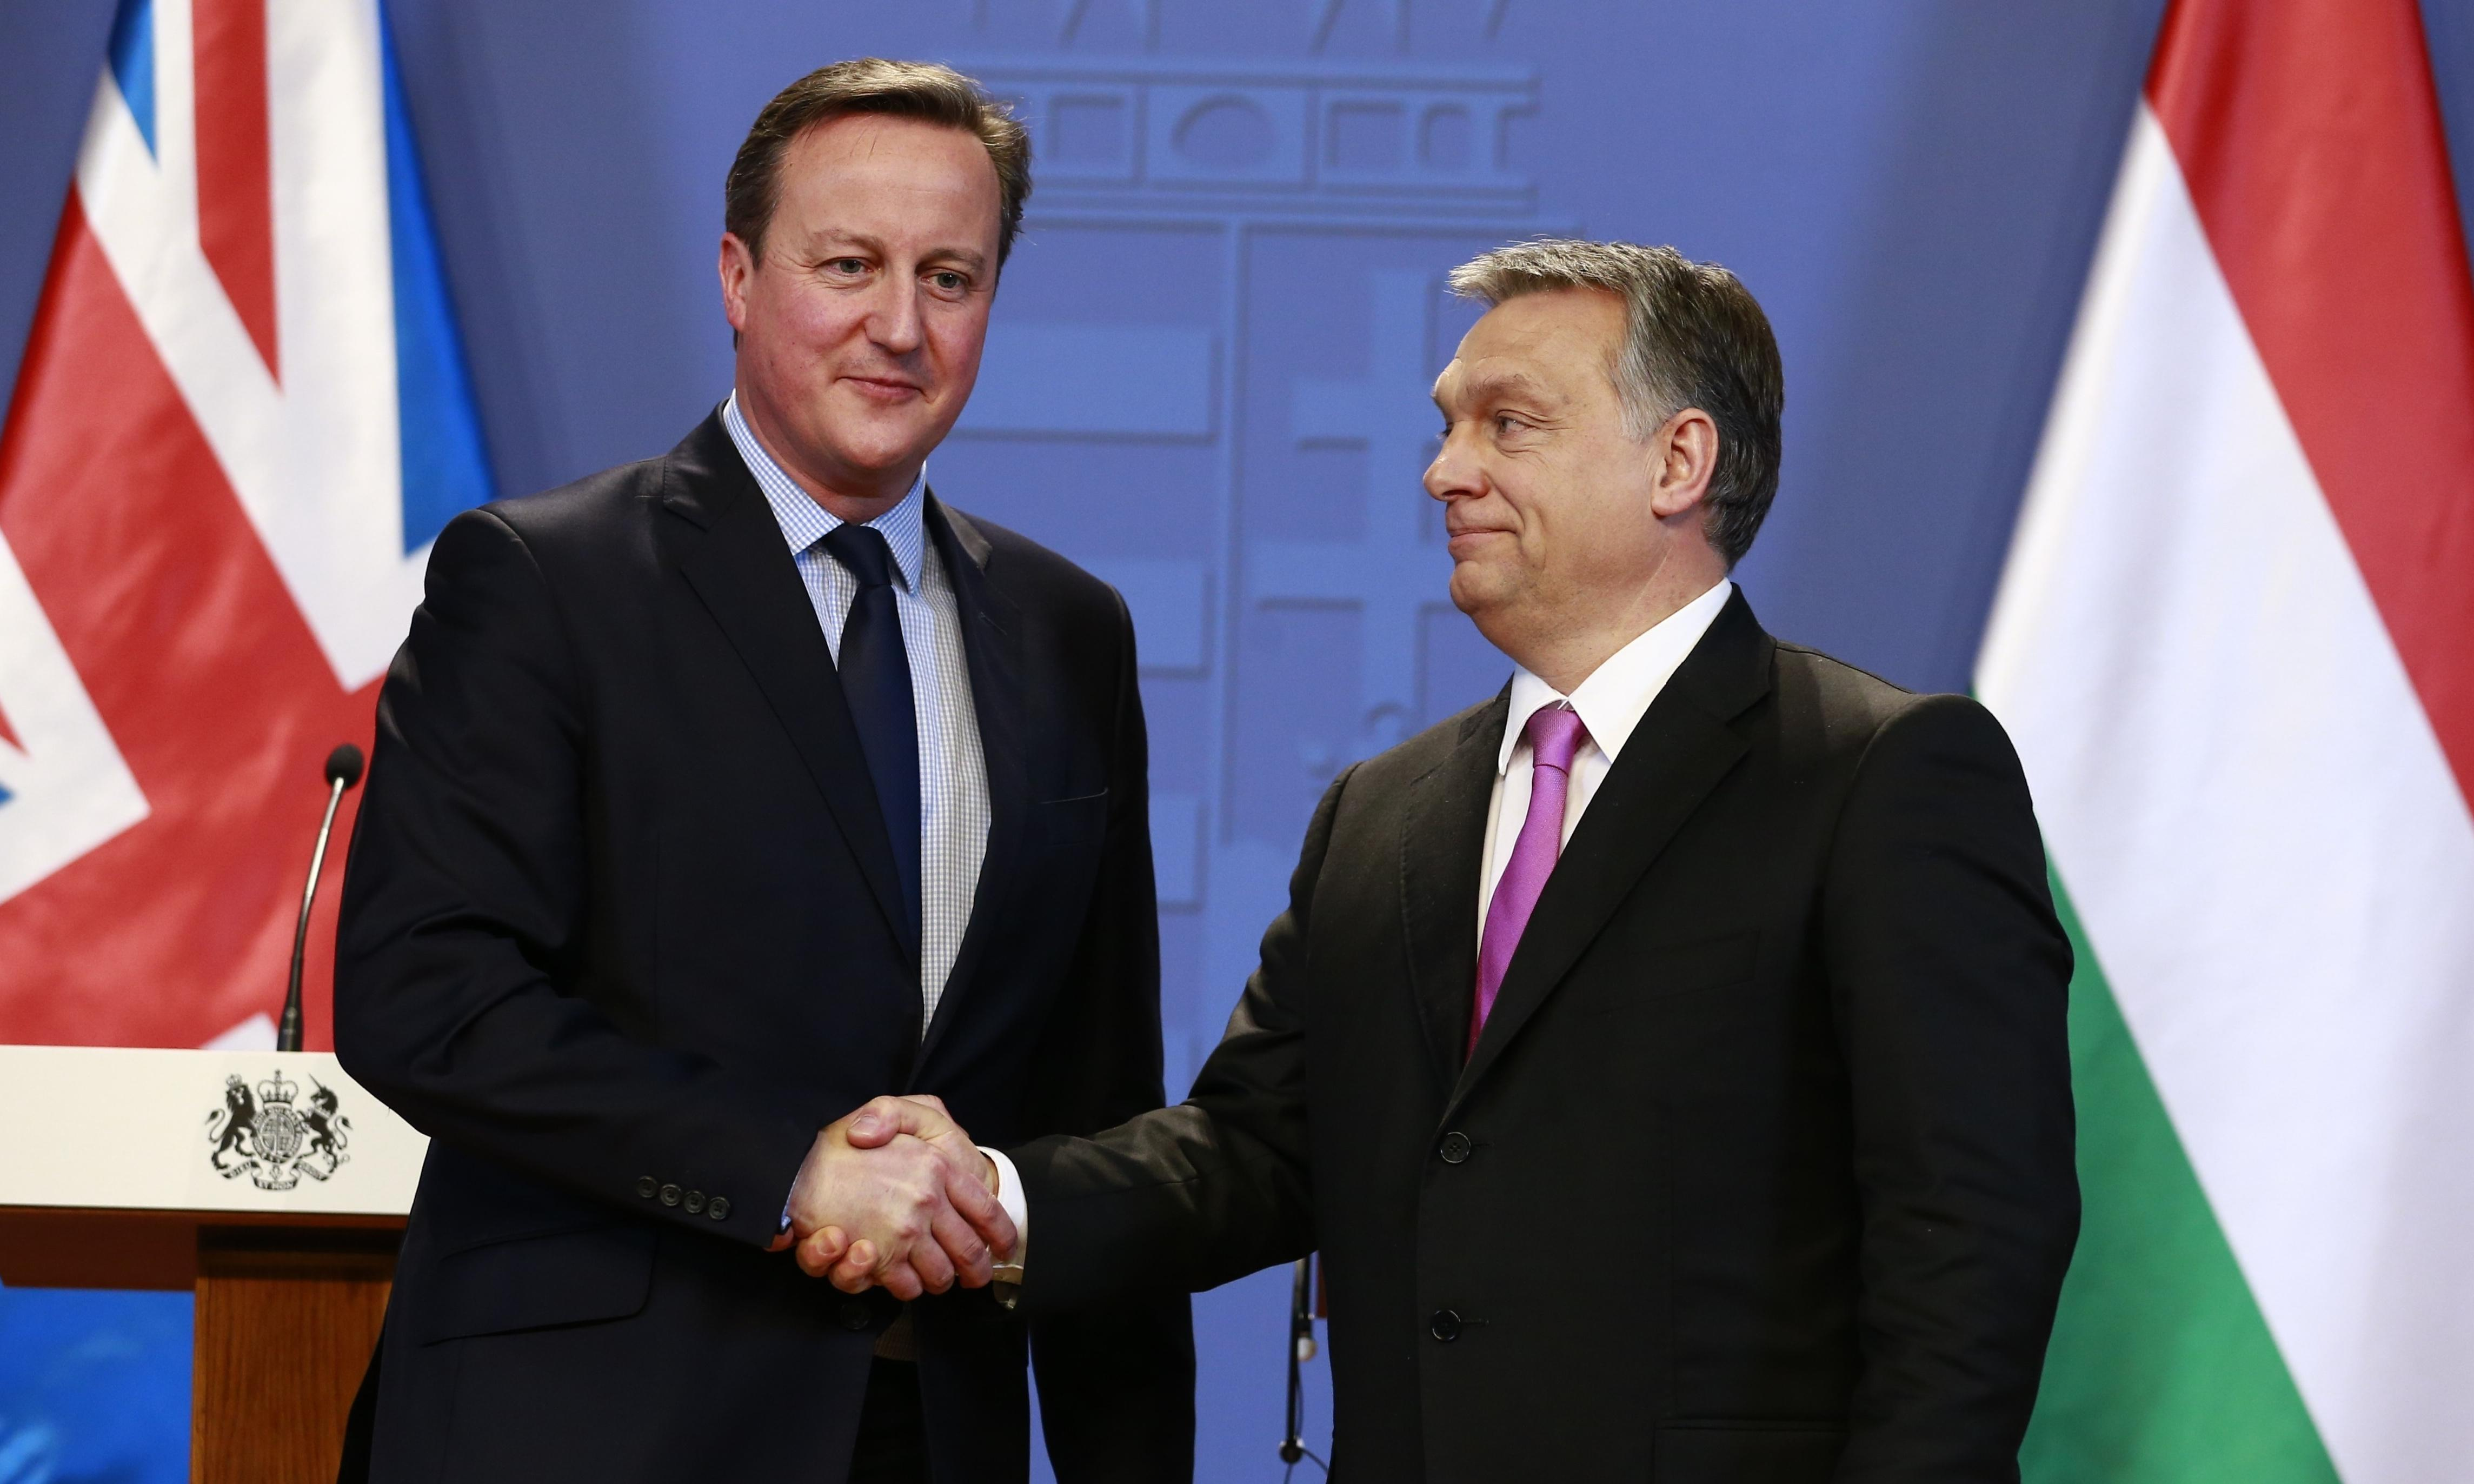 If Hungary's voting system is unfair then Britain's is even worse